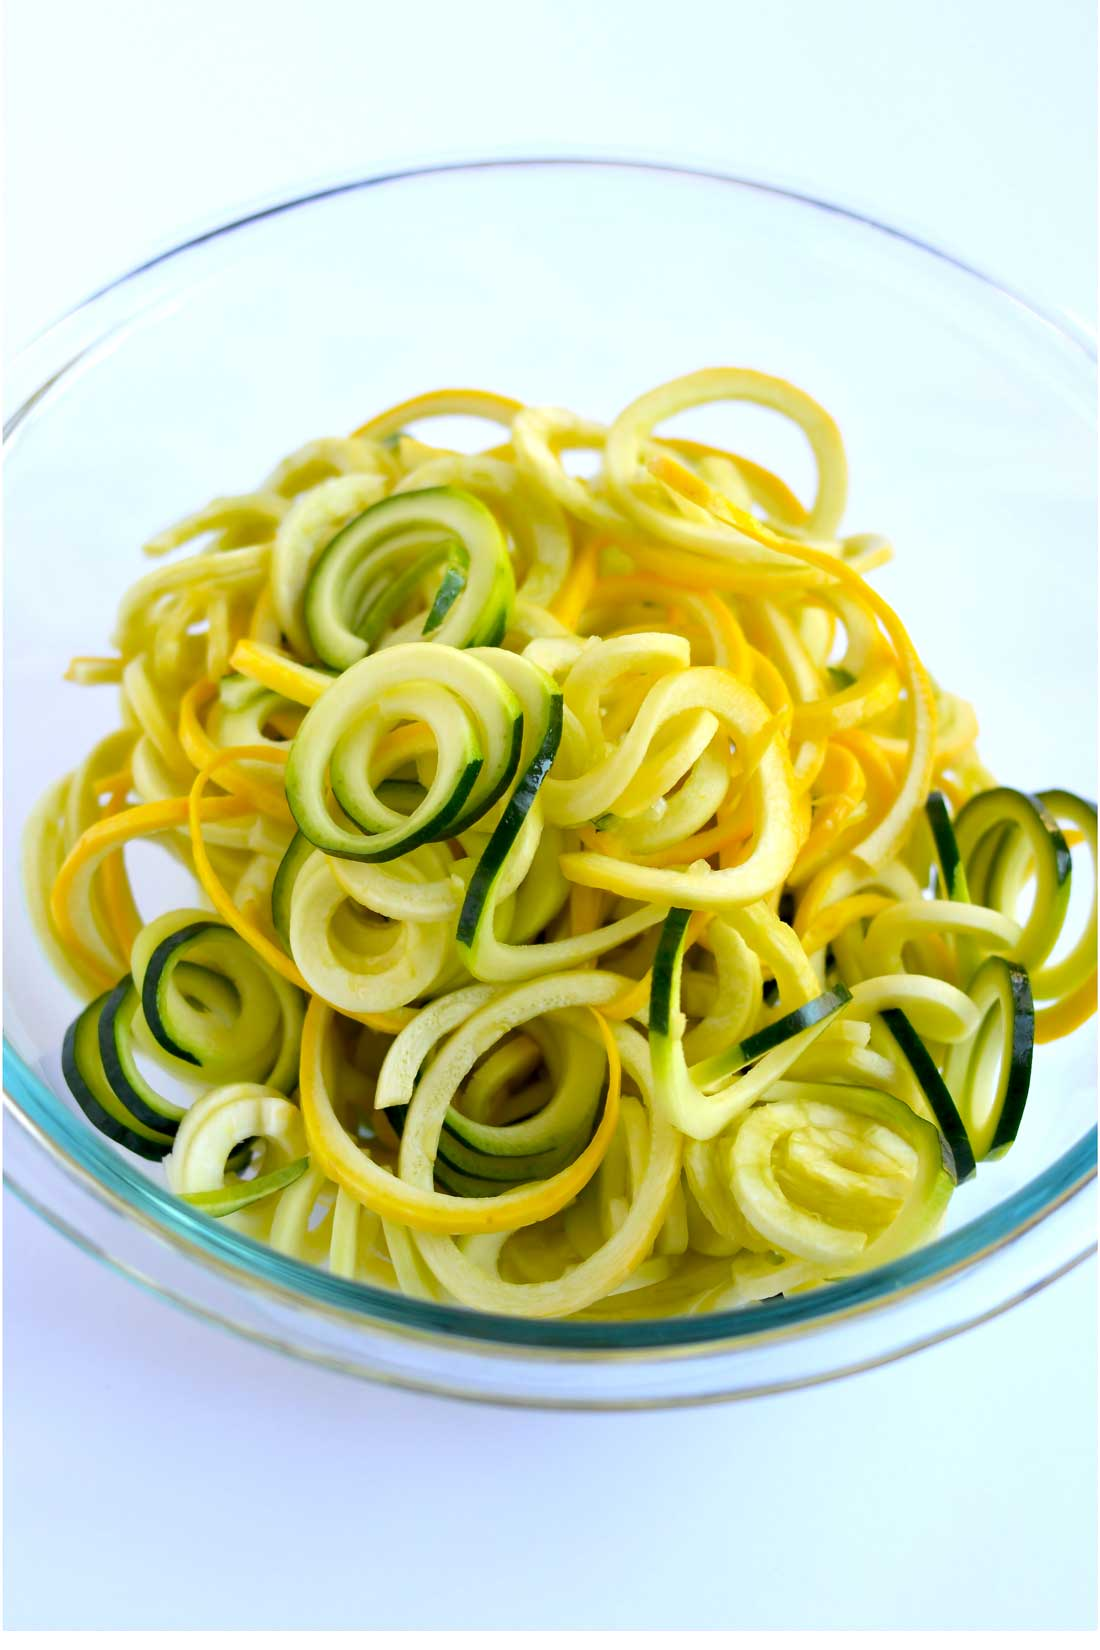 All The Pasta You Can Eat With Olive Garden S Never Ending: Garlic Parmesan Zoodles (Spiralizer Recipe)